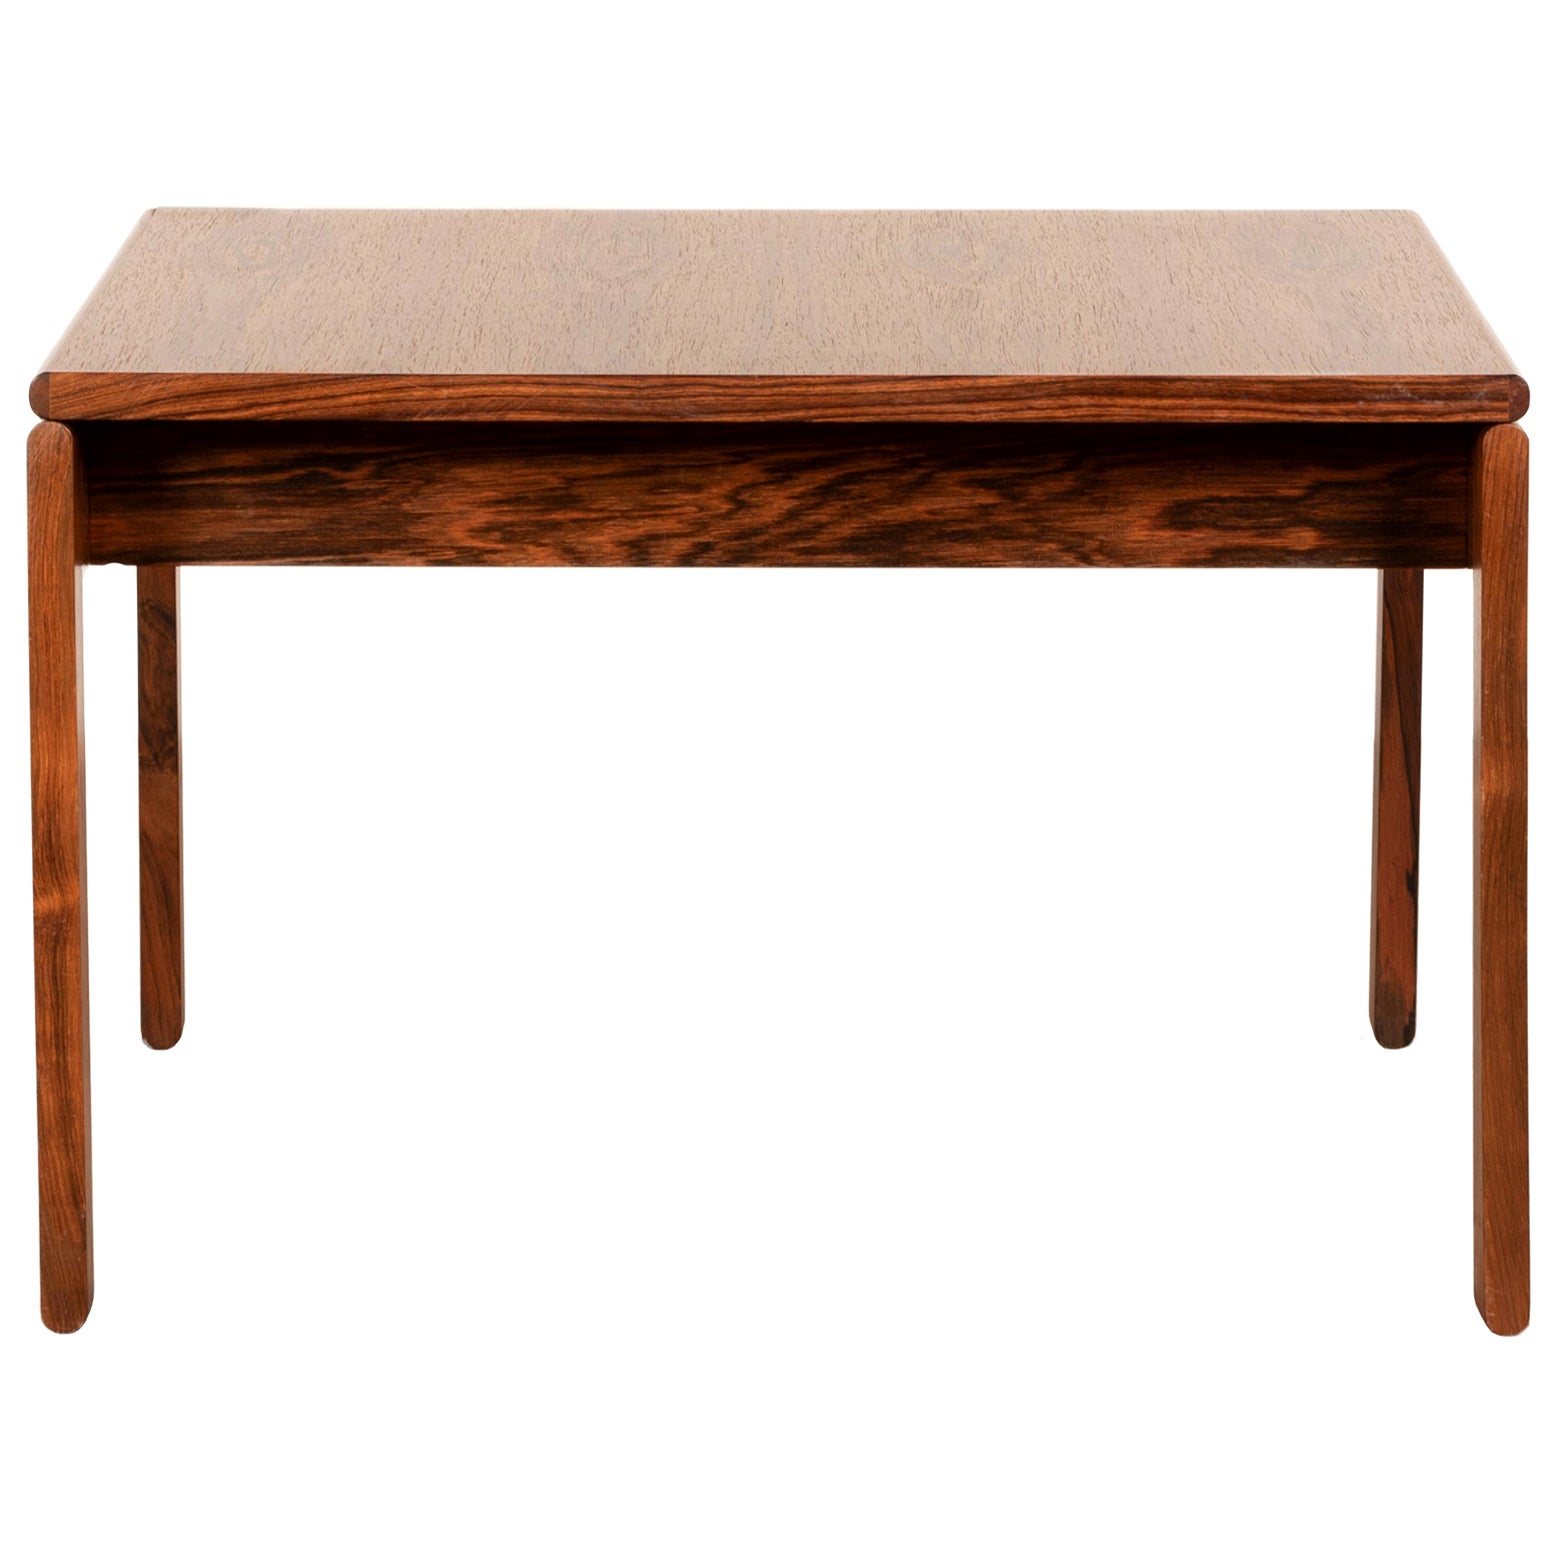 Tobia Scarpa Coffee Table in wood for Haimi Finland, 1975